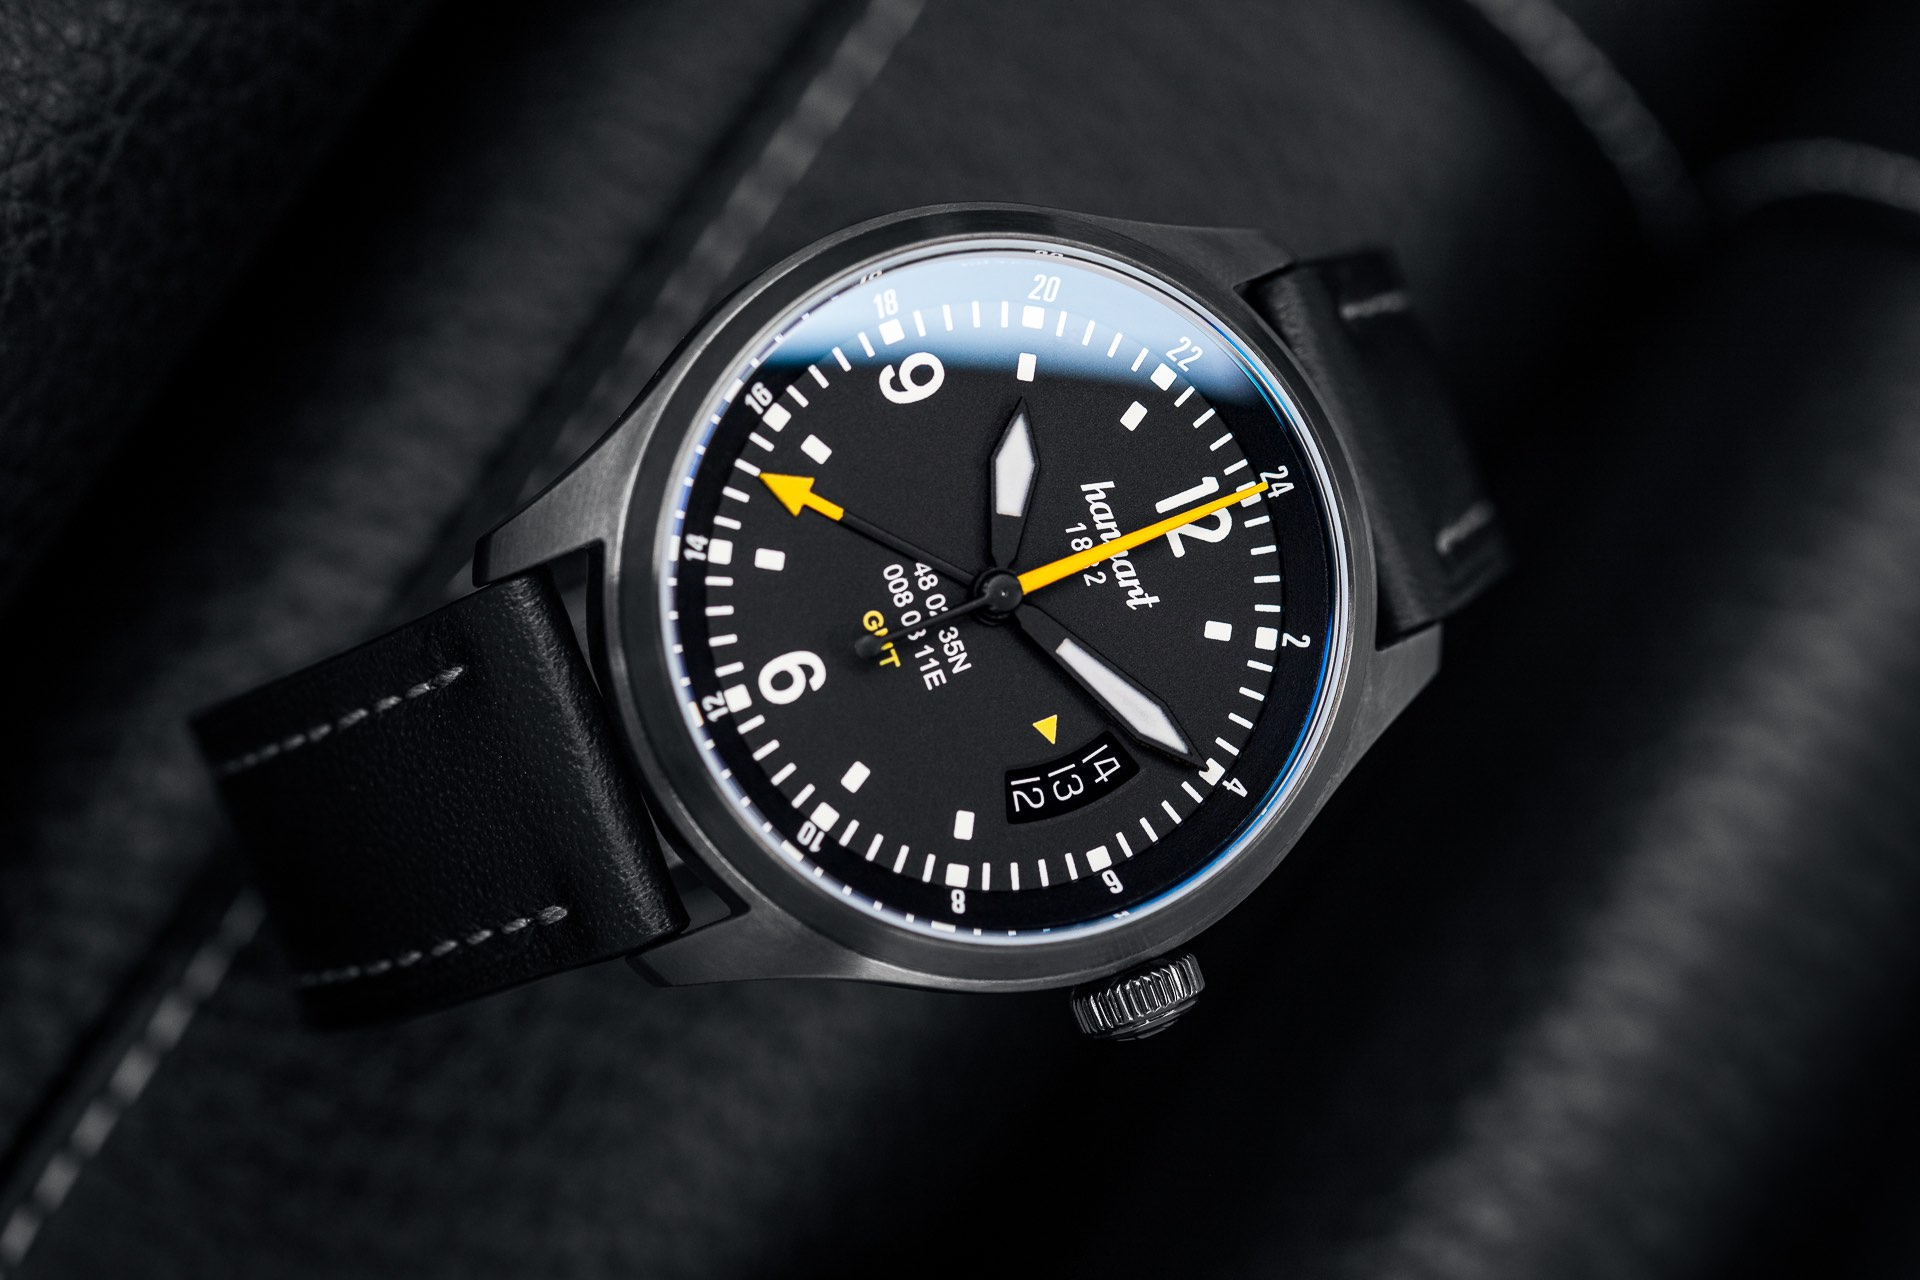 Hanhart S-Series Pilot Watch